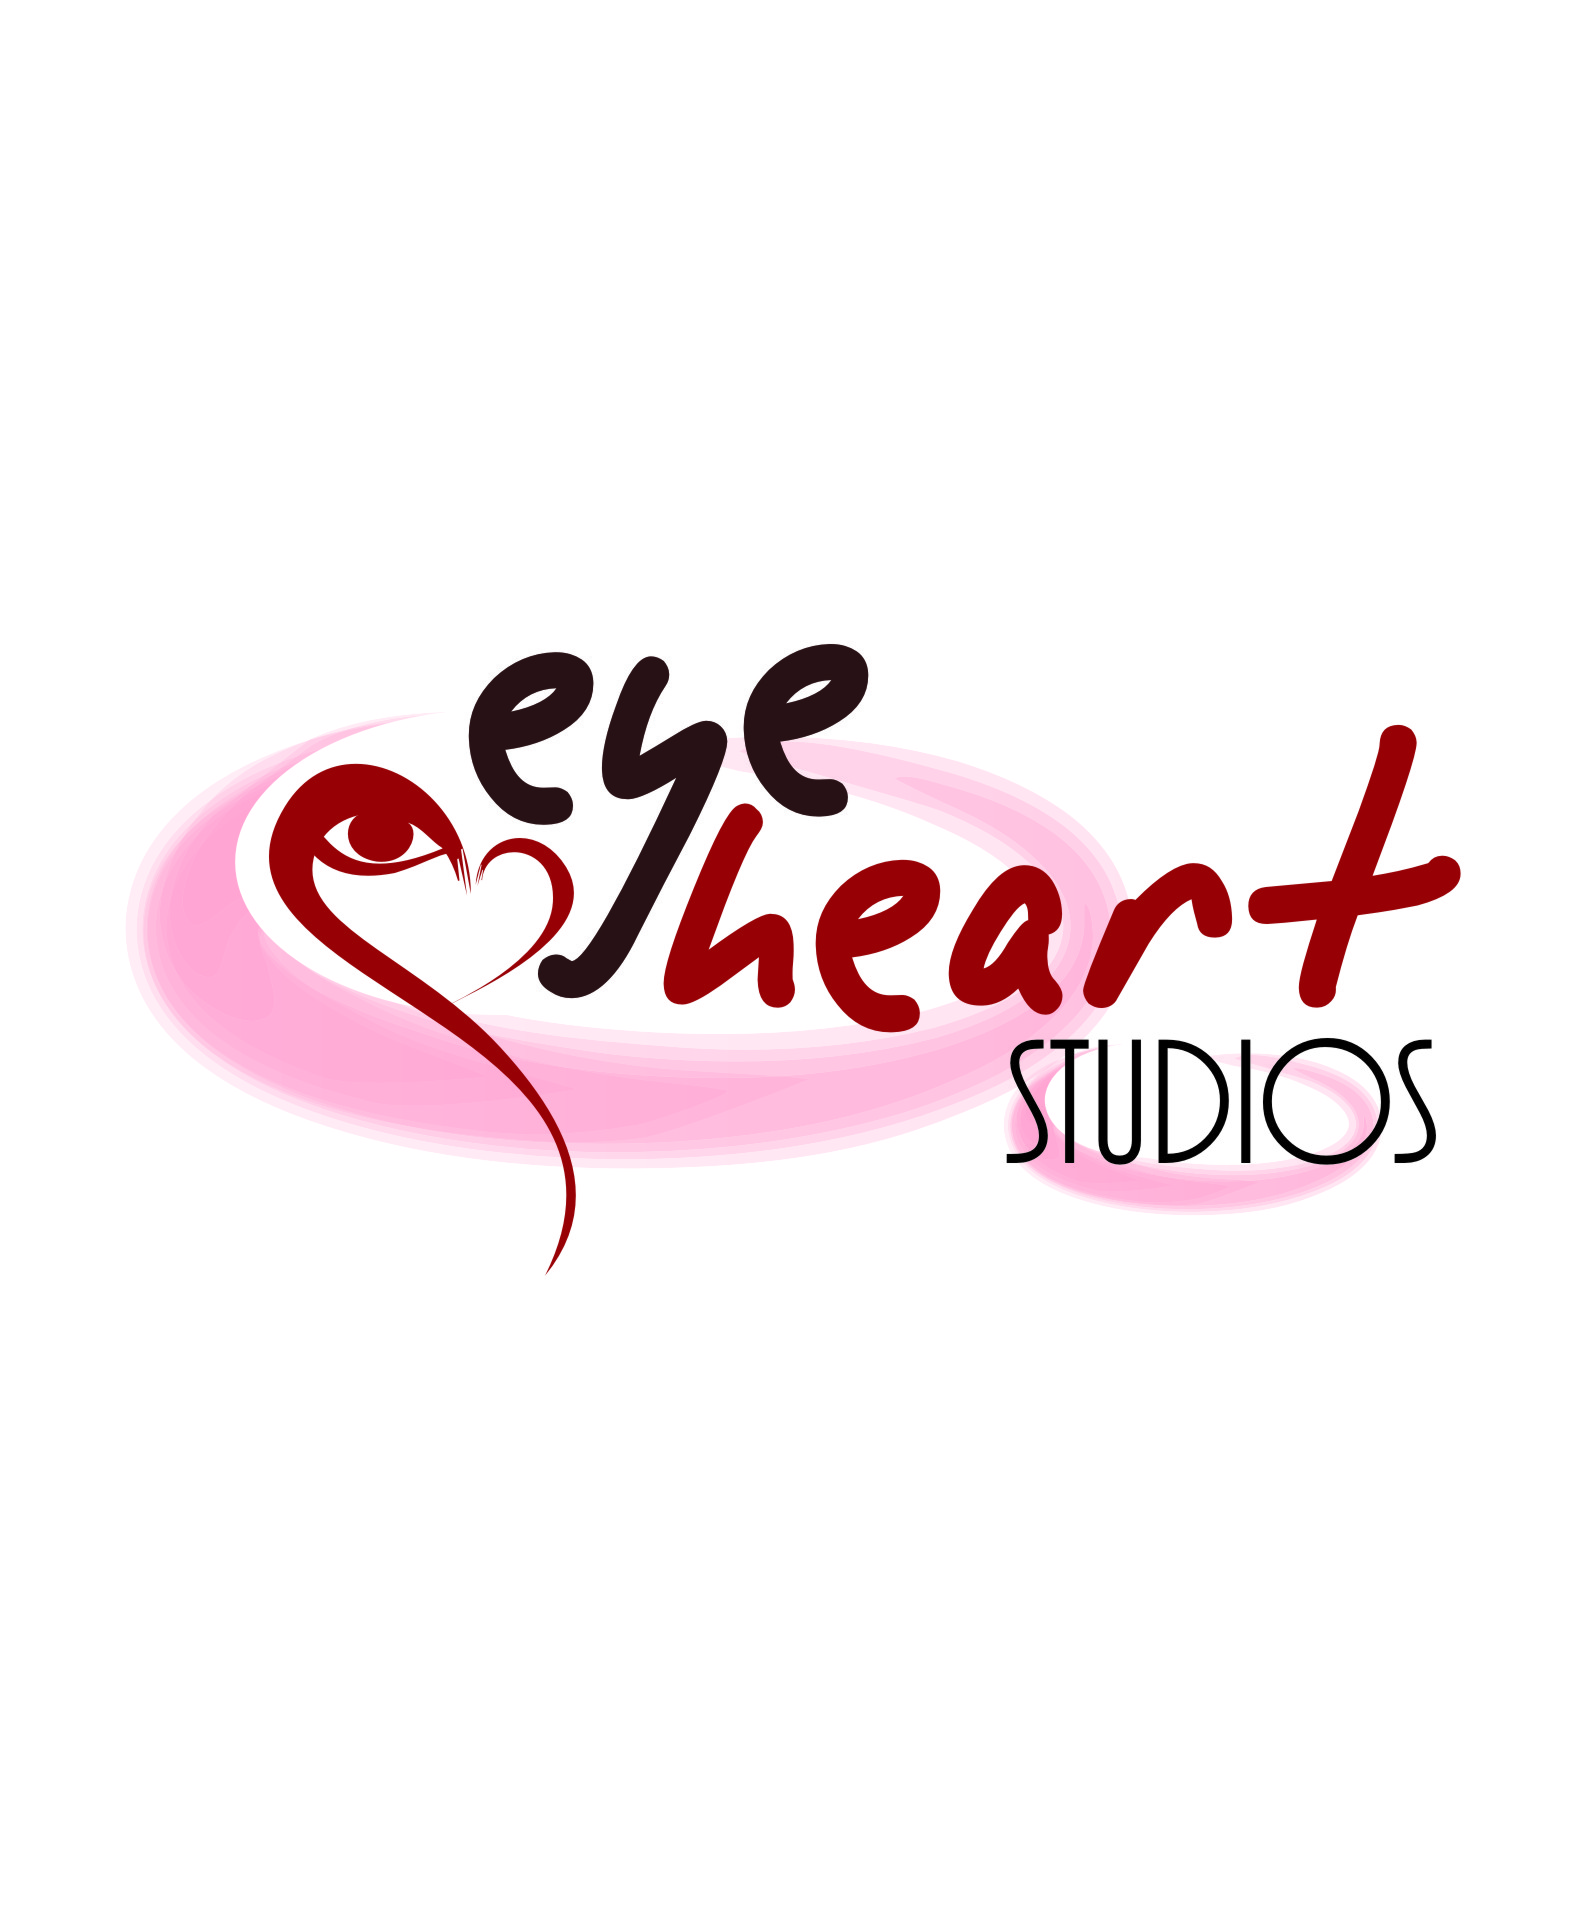 Logo Design by Private User - Entry No. 137 in the Logo Design Contest Unique Logo Design Wanted for Eye Heart Studios.